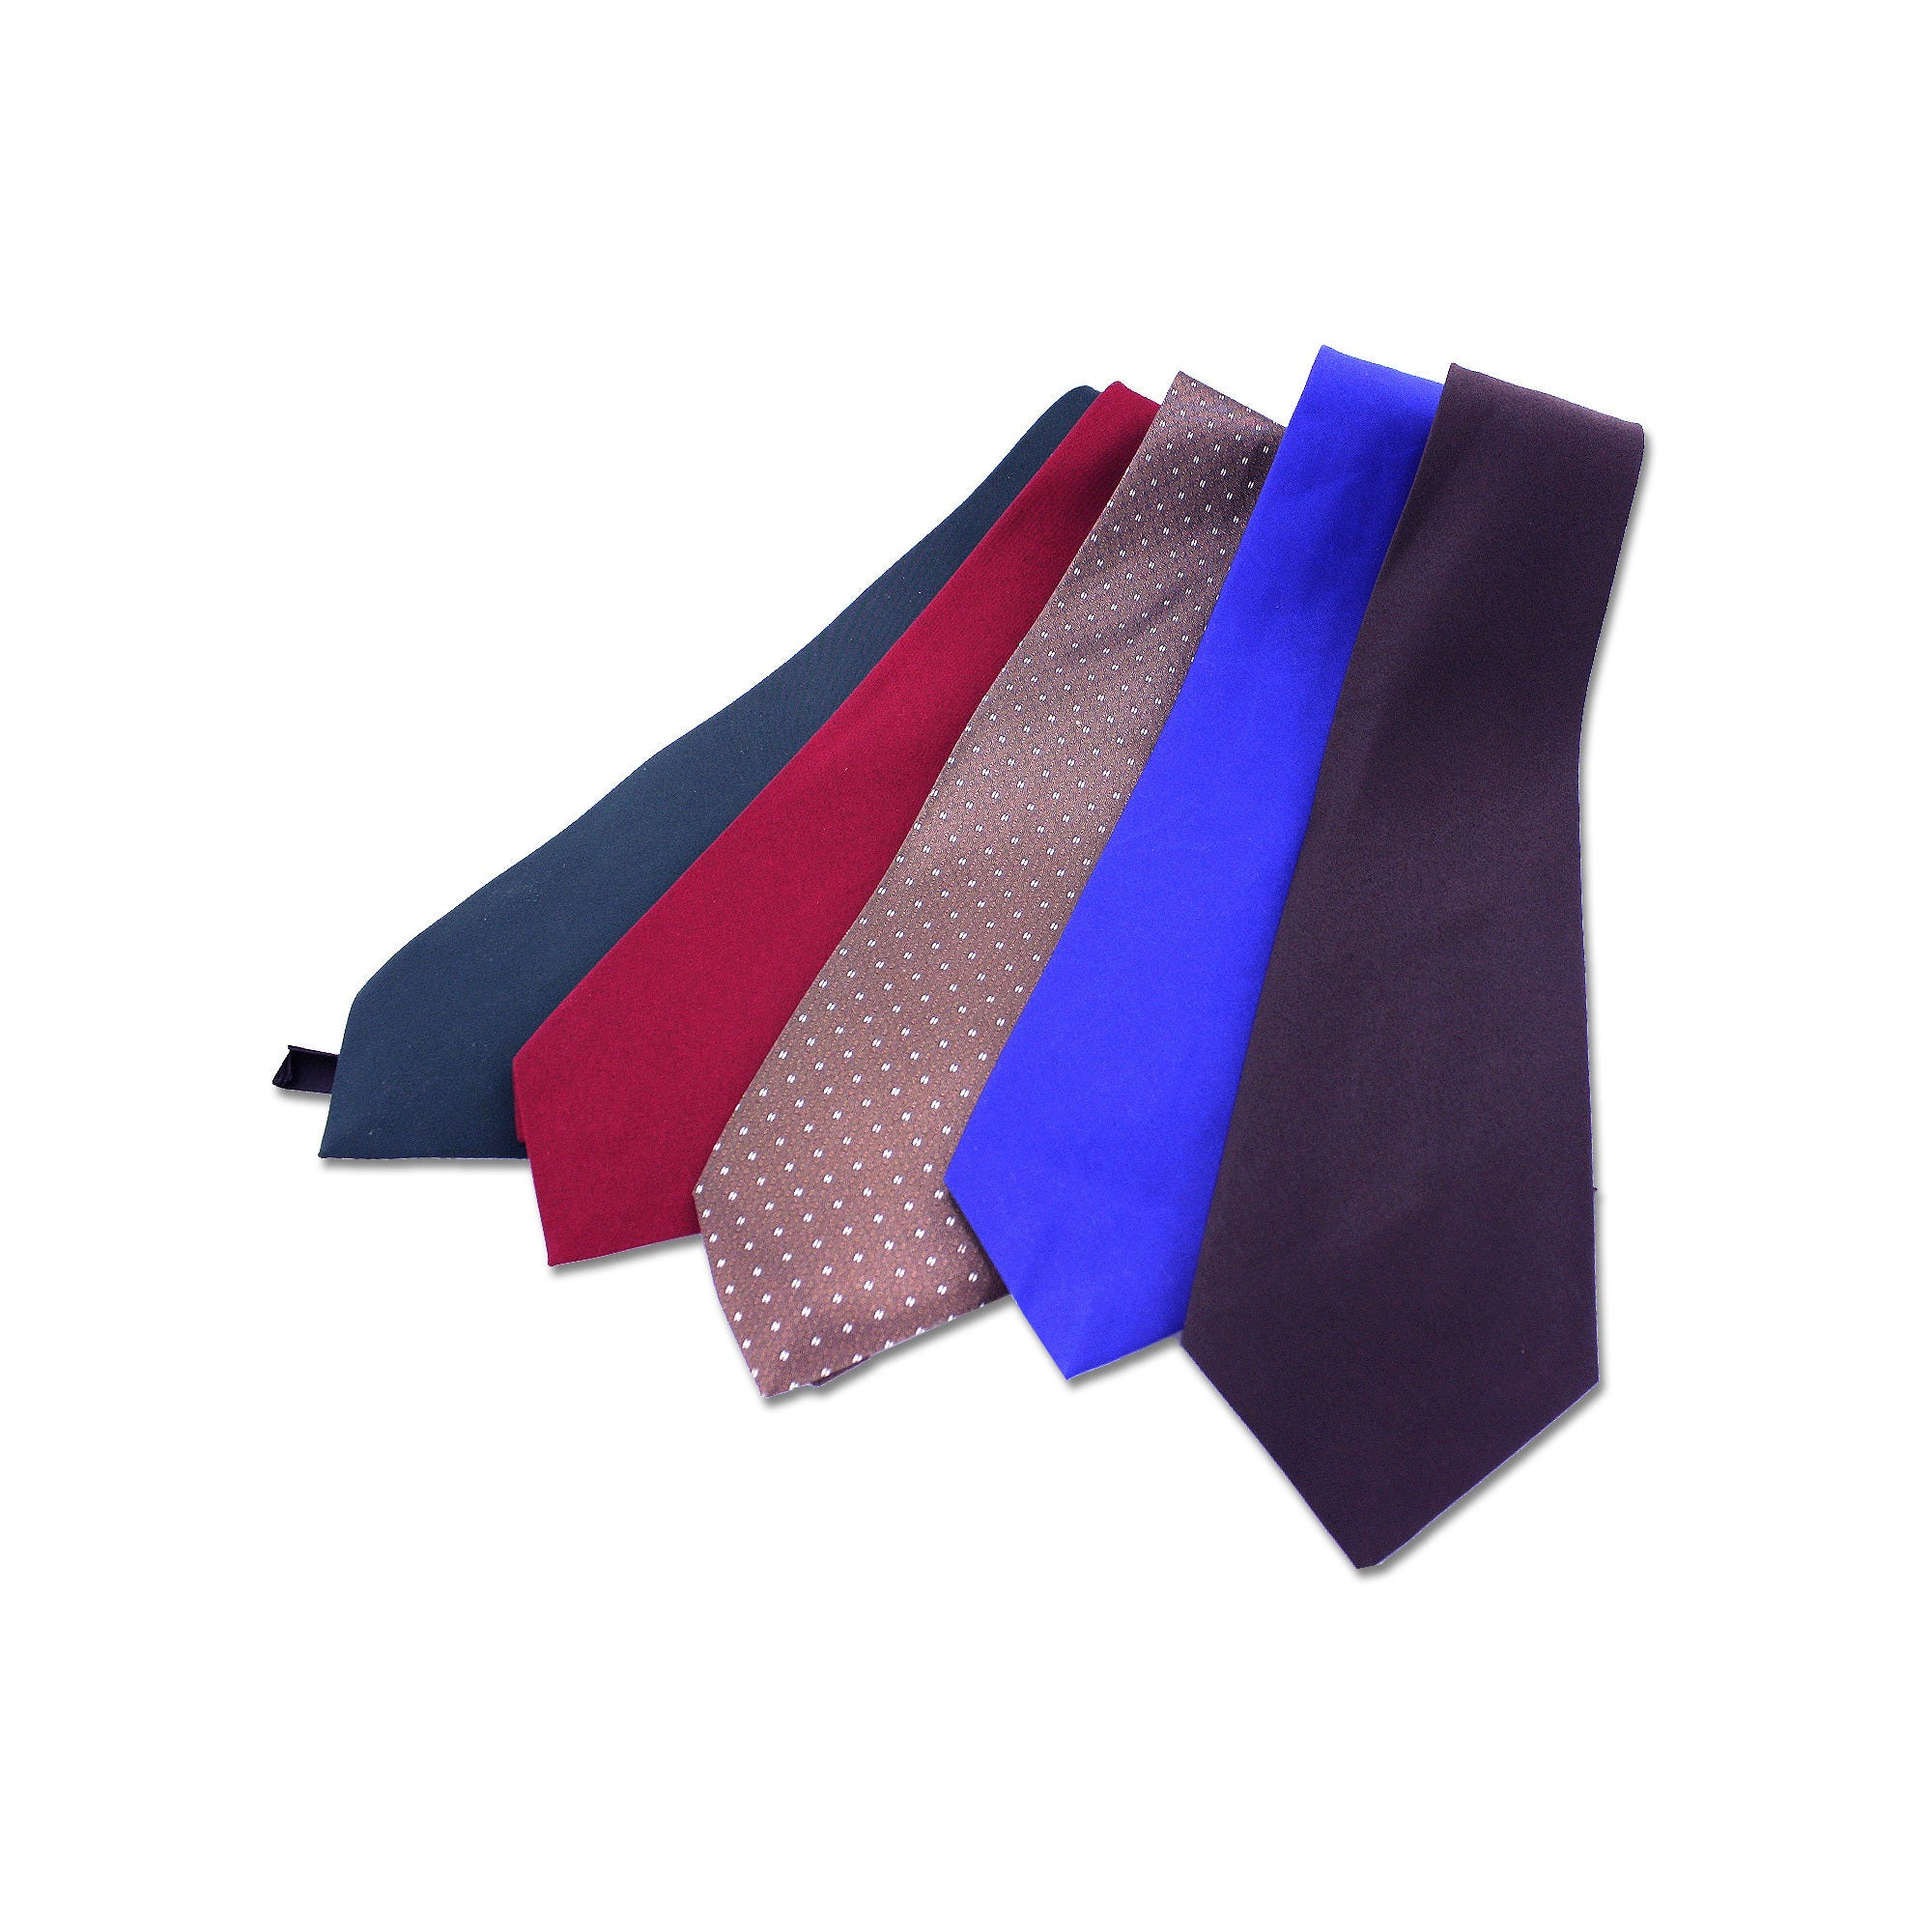 polyester-assorted-solid-color-men-s-TIEs